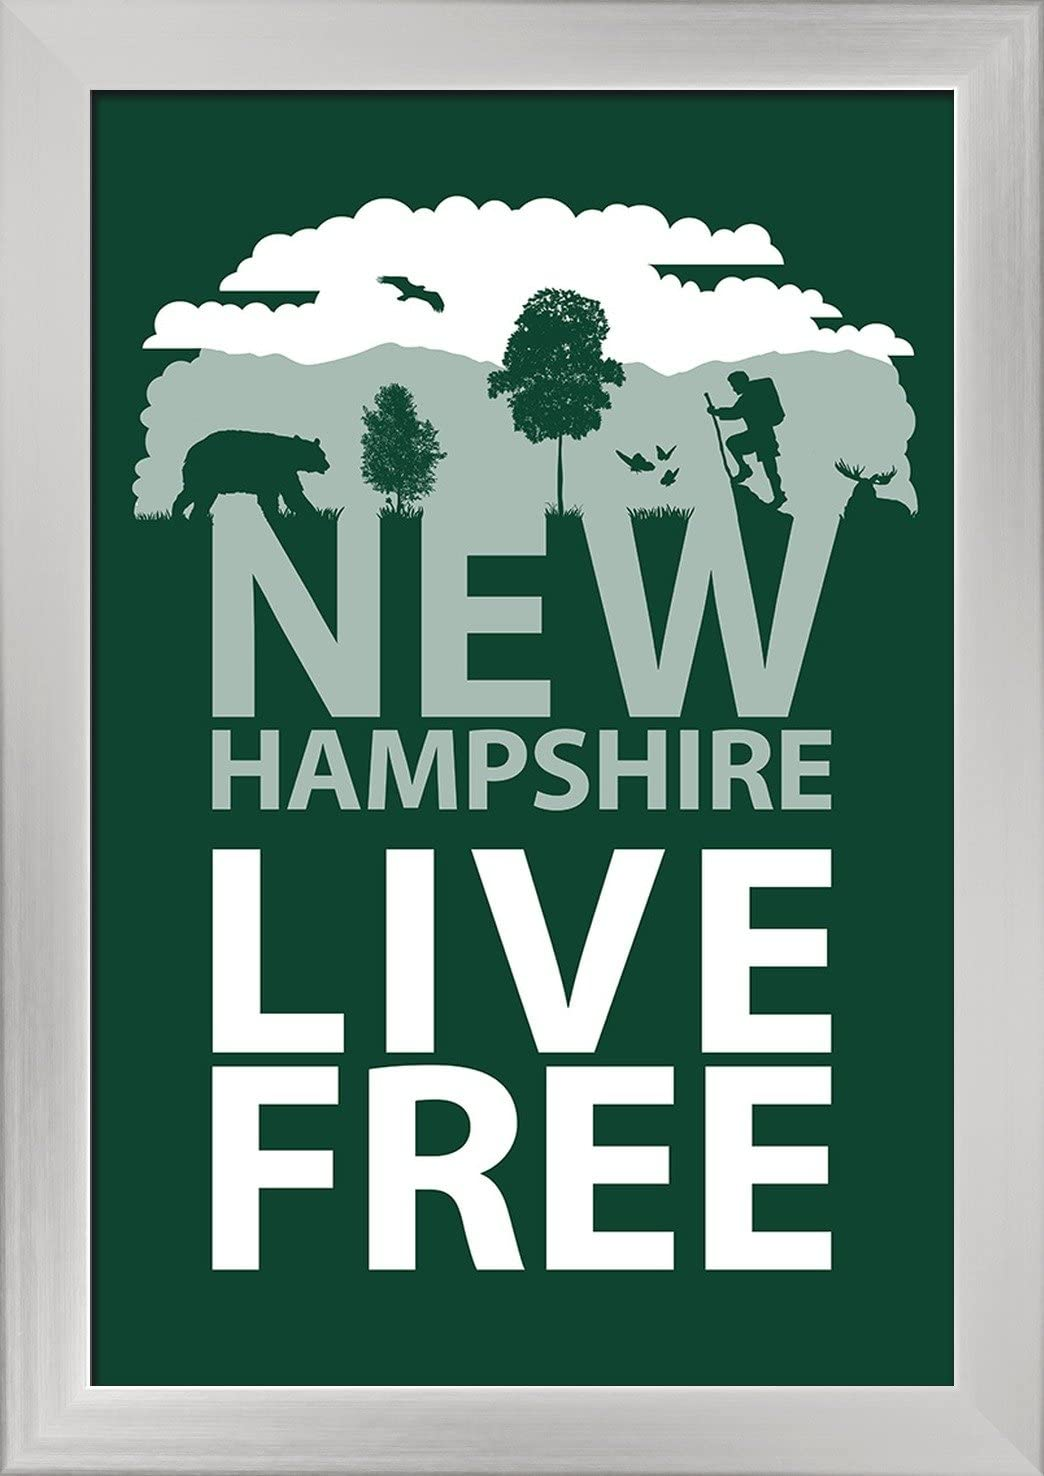 12x18 Giclee Art Print, Gallery Framed, White Wood New Hampshire Silhouette